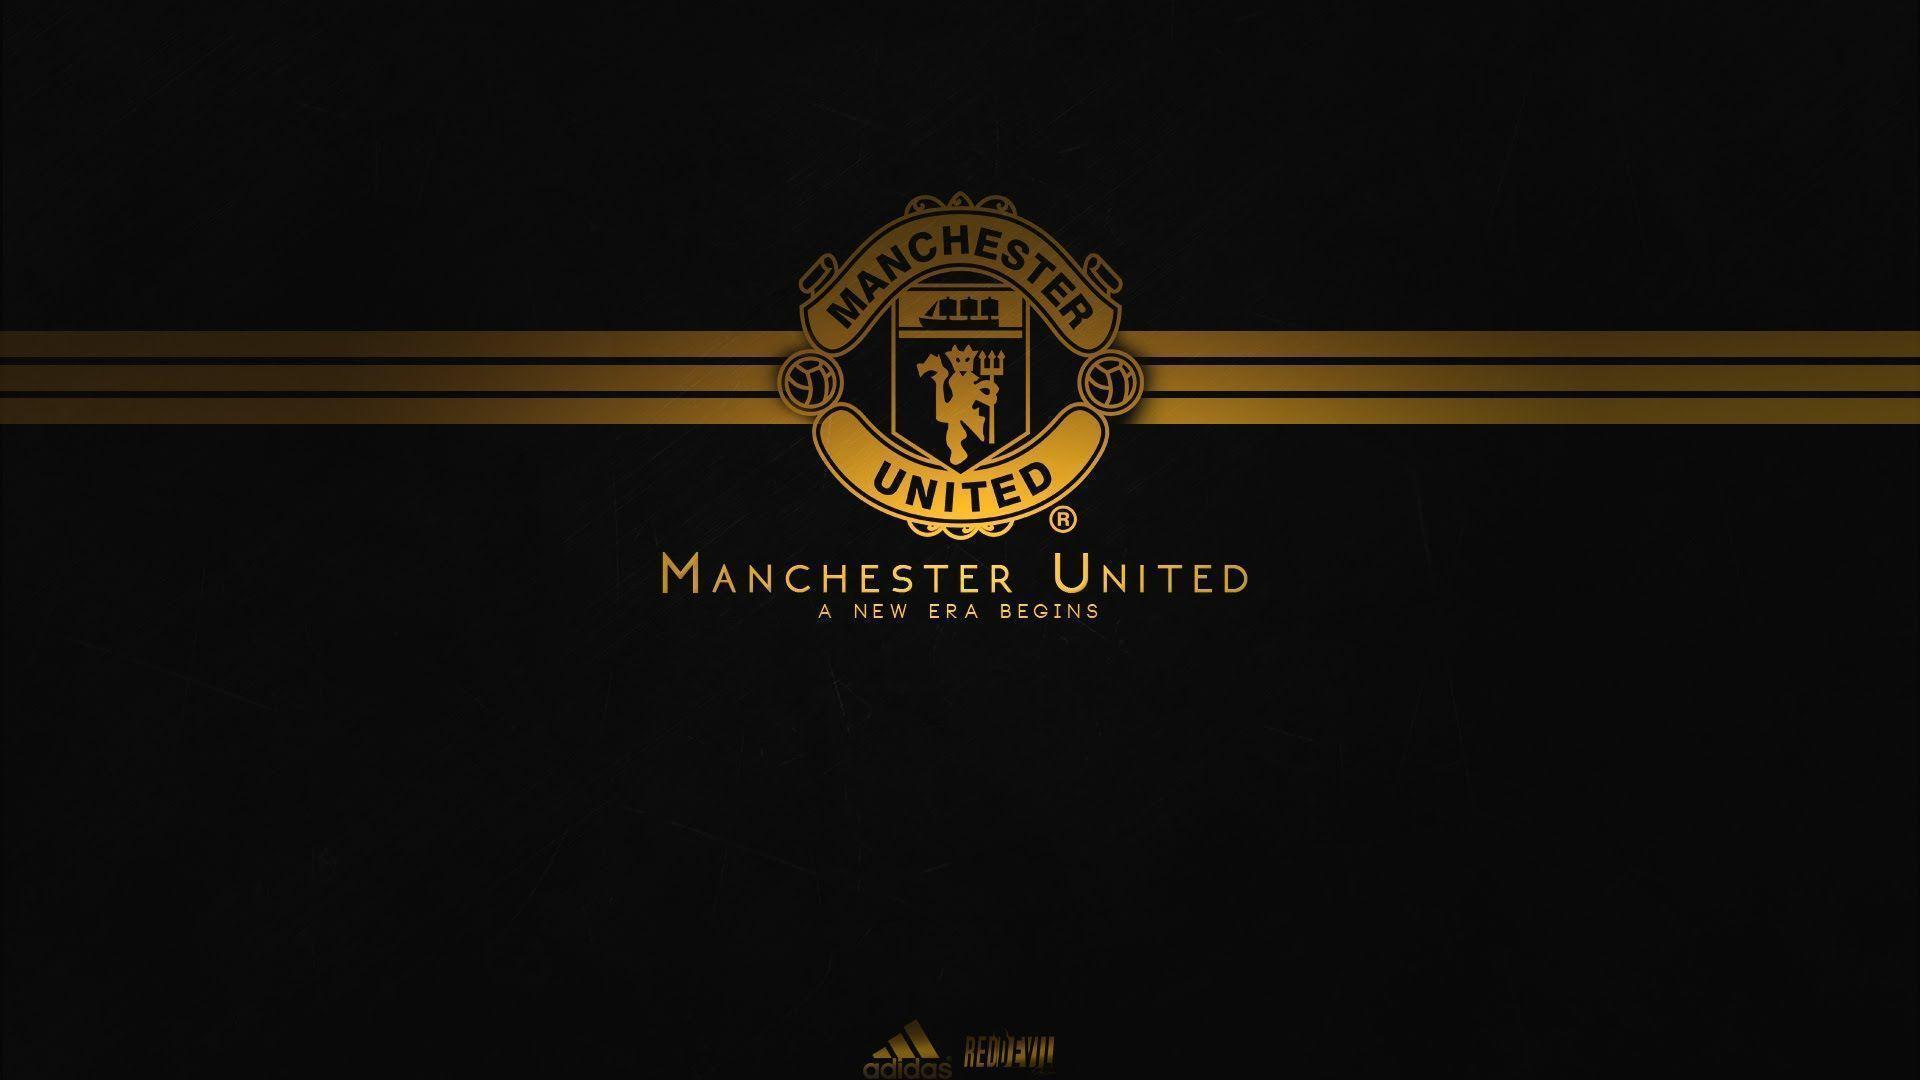 manchester united wallpapers 1 - photo #17